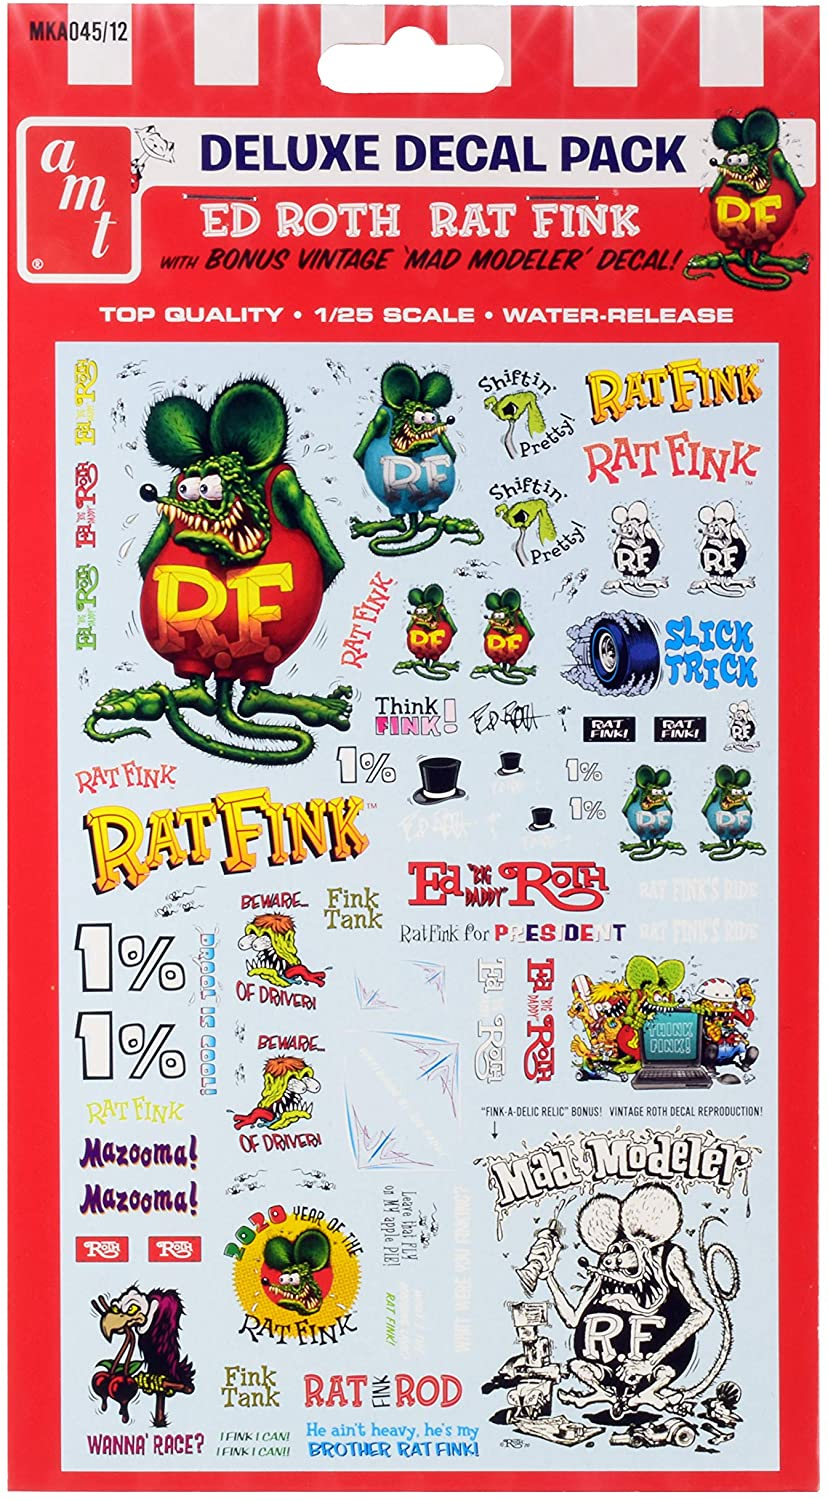 Ed Roth Rat Fink Decal Pack for 1/25 Scale Models by AMT MKA045